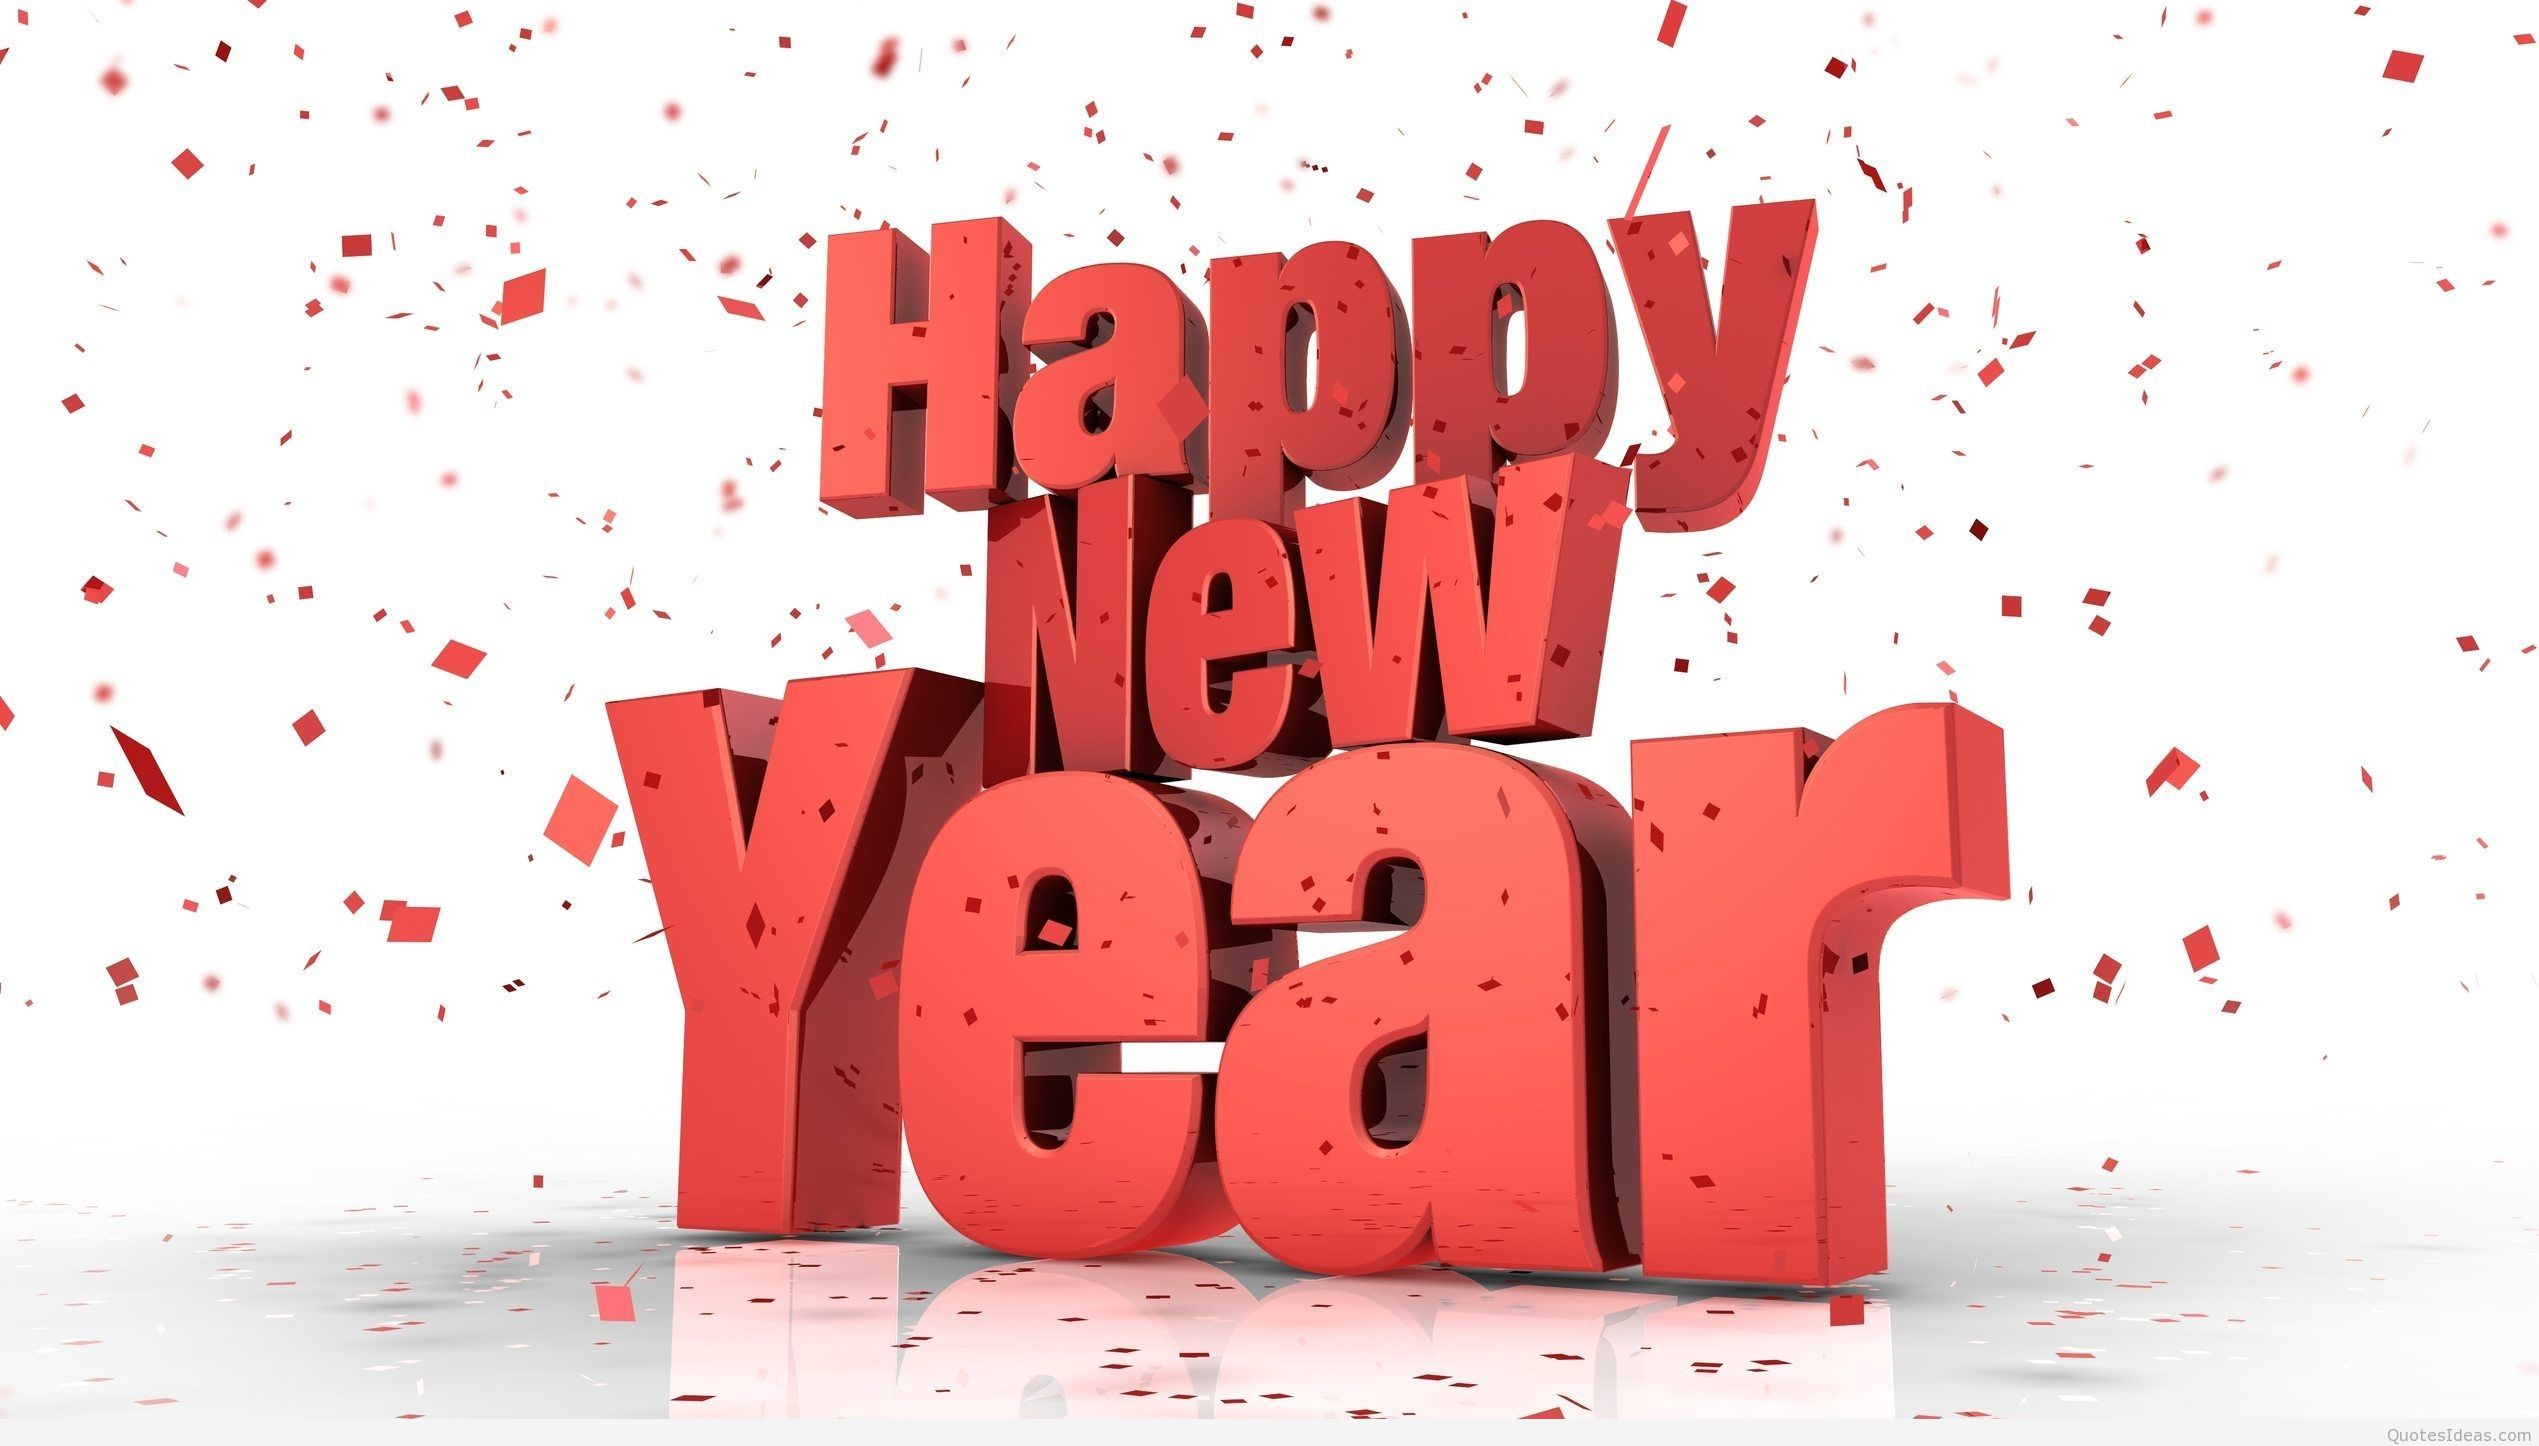 Happy New Year HD Wallpaper, Photos and Images